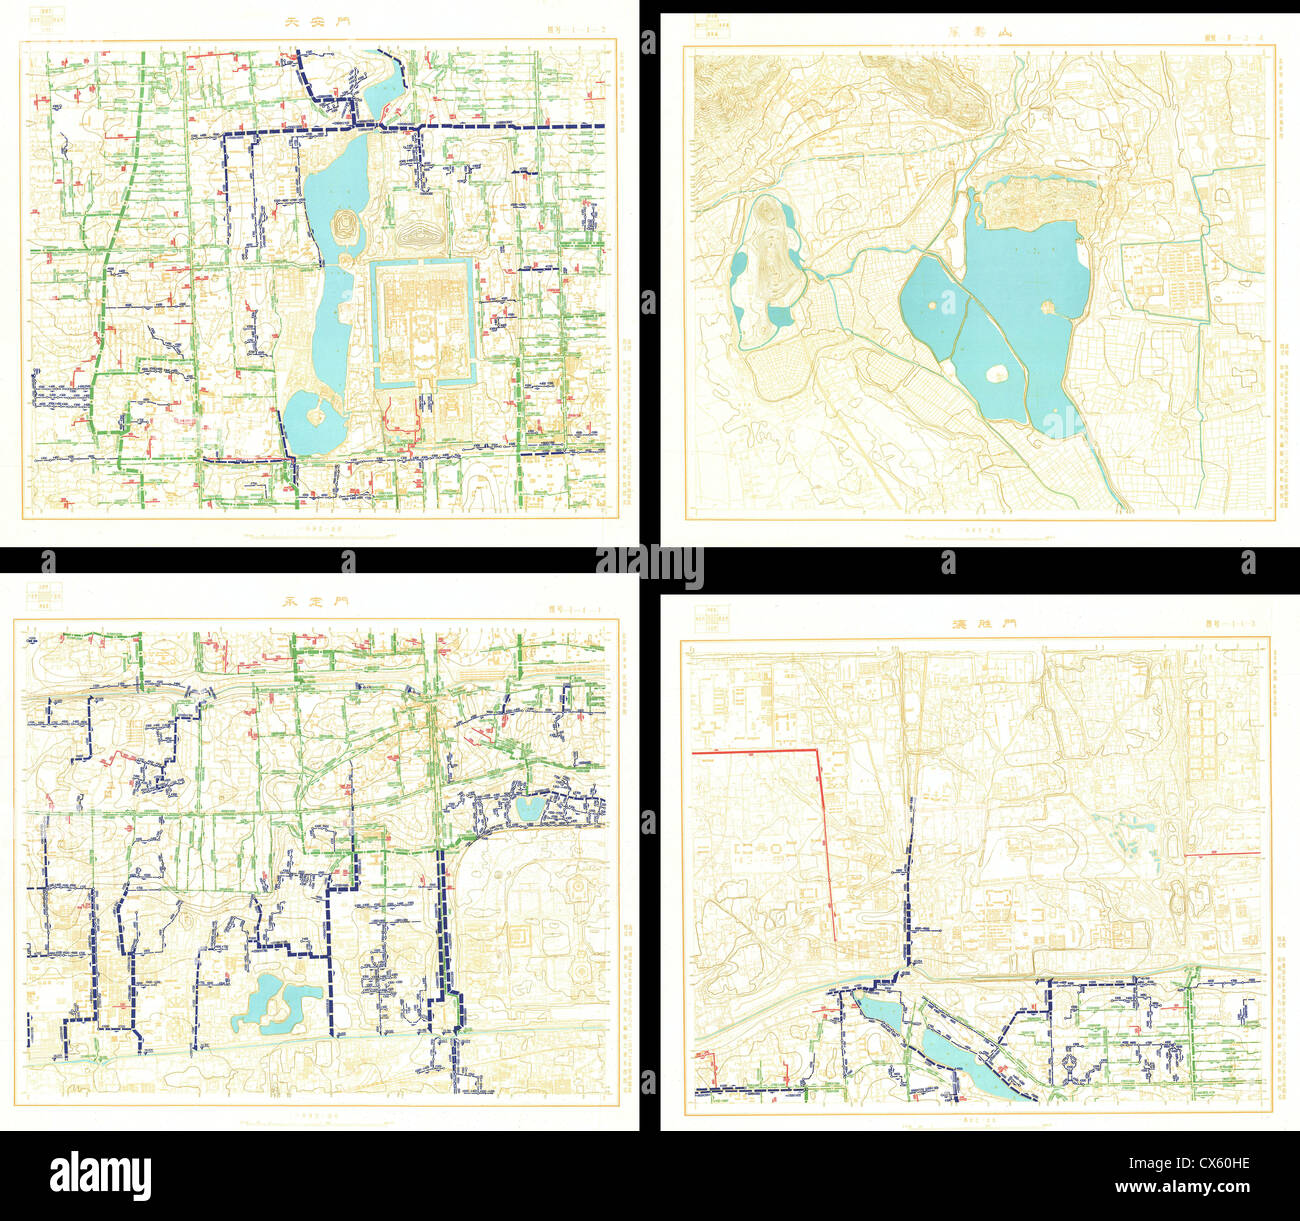 1954 Chinese Topographical Map Set of Beijing, China (45 Maps) - Stock Image